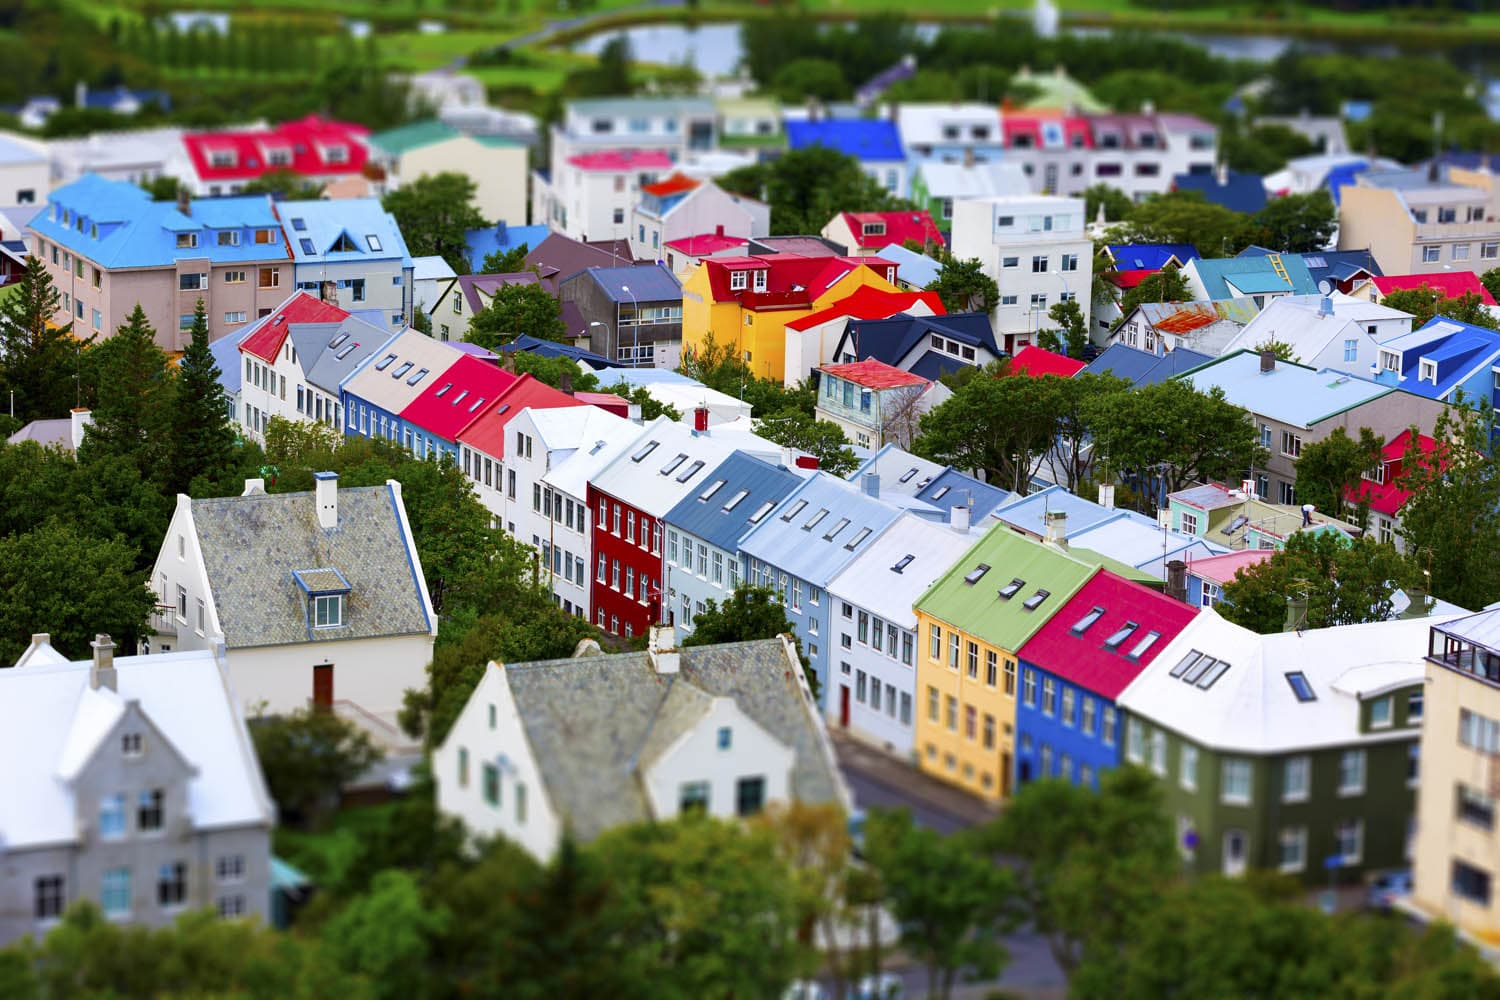 Many colorful houses in Reykjavik.